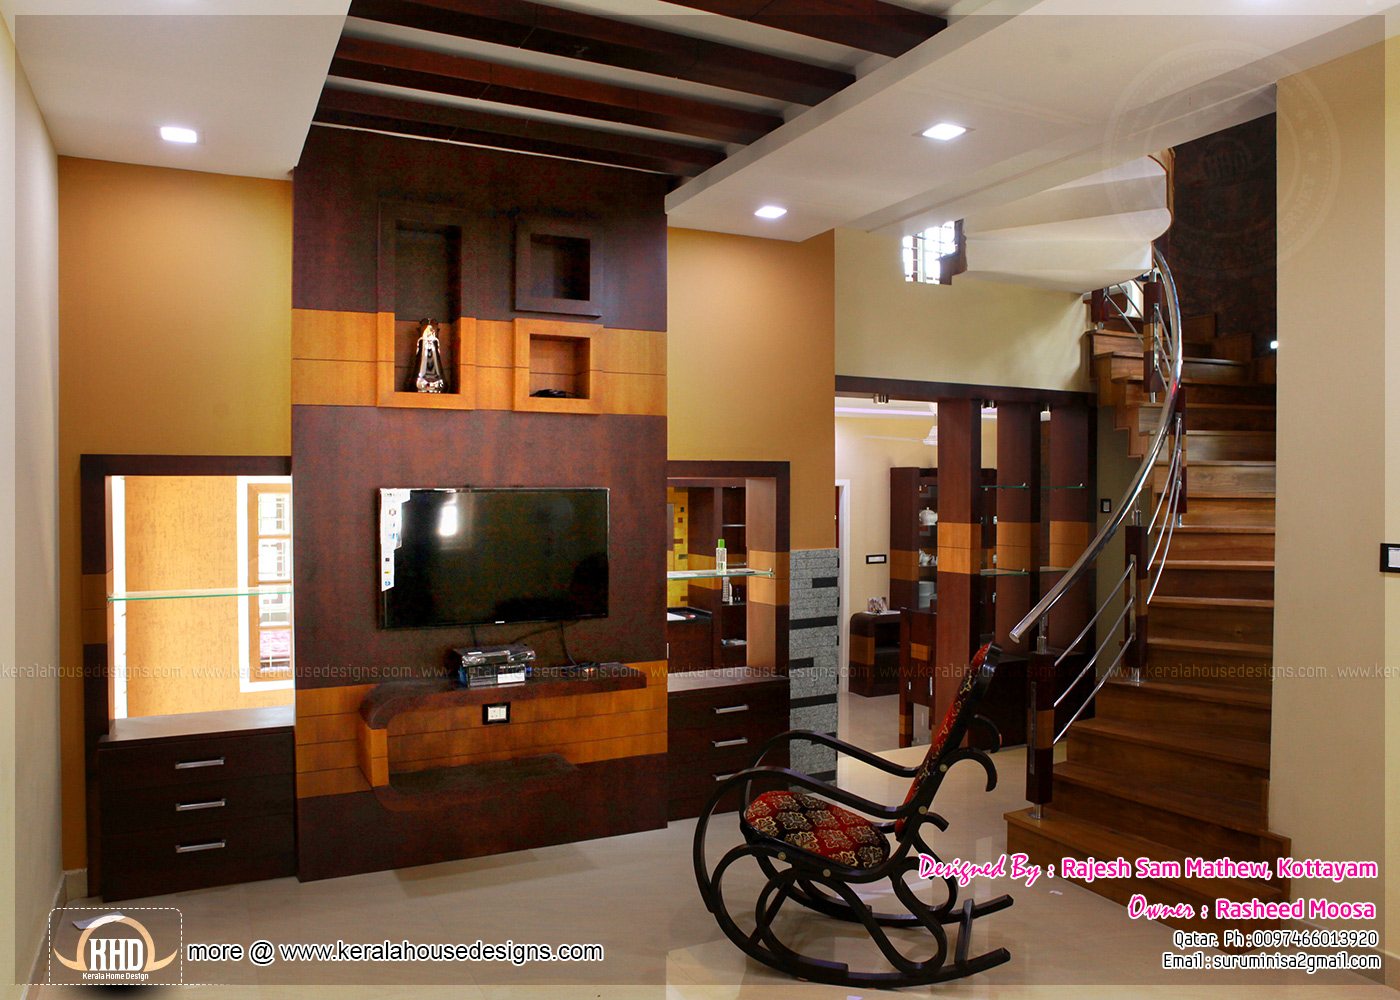 Kerala interior design with photos kerala home design for Kerala house living room interior design